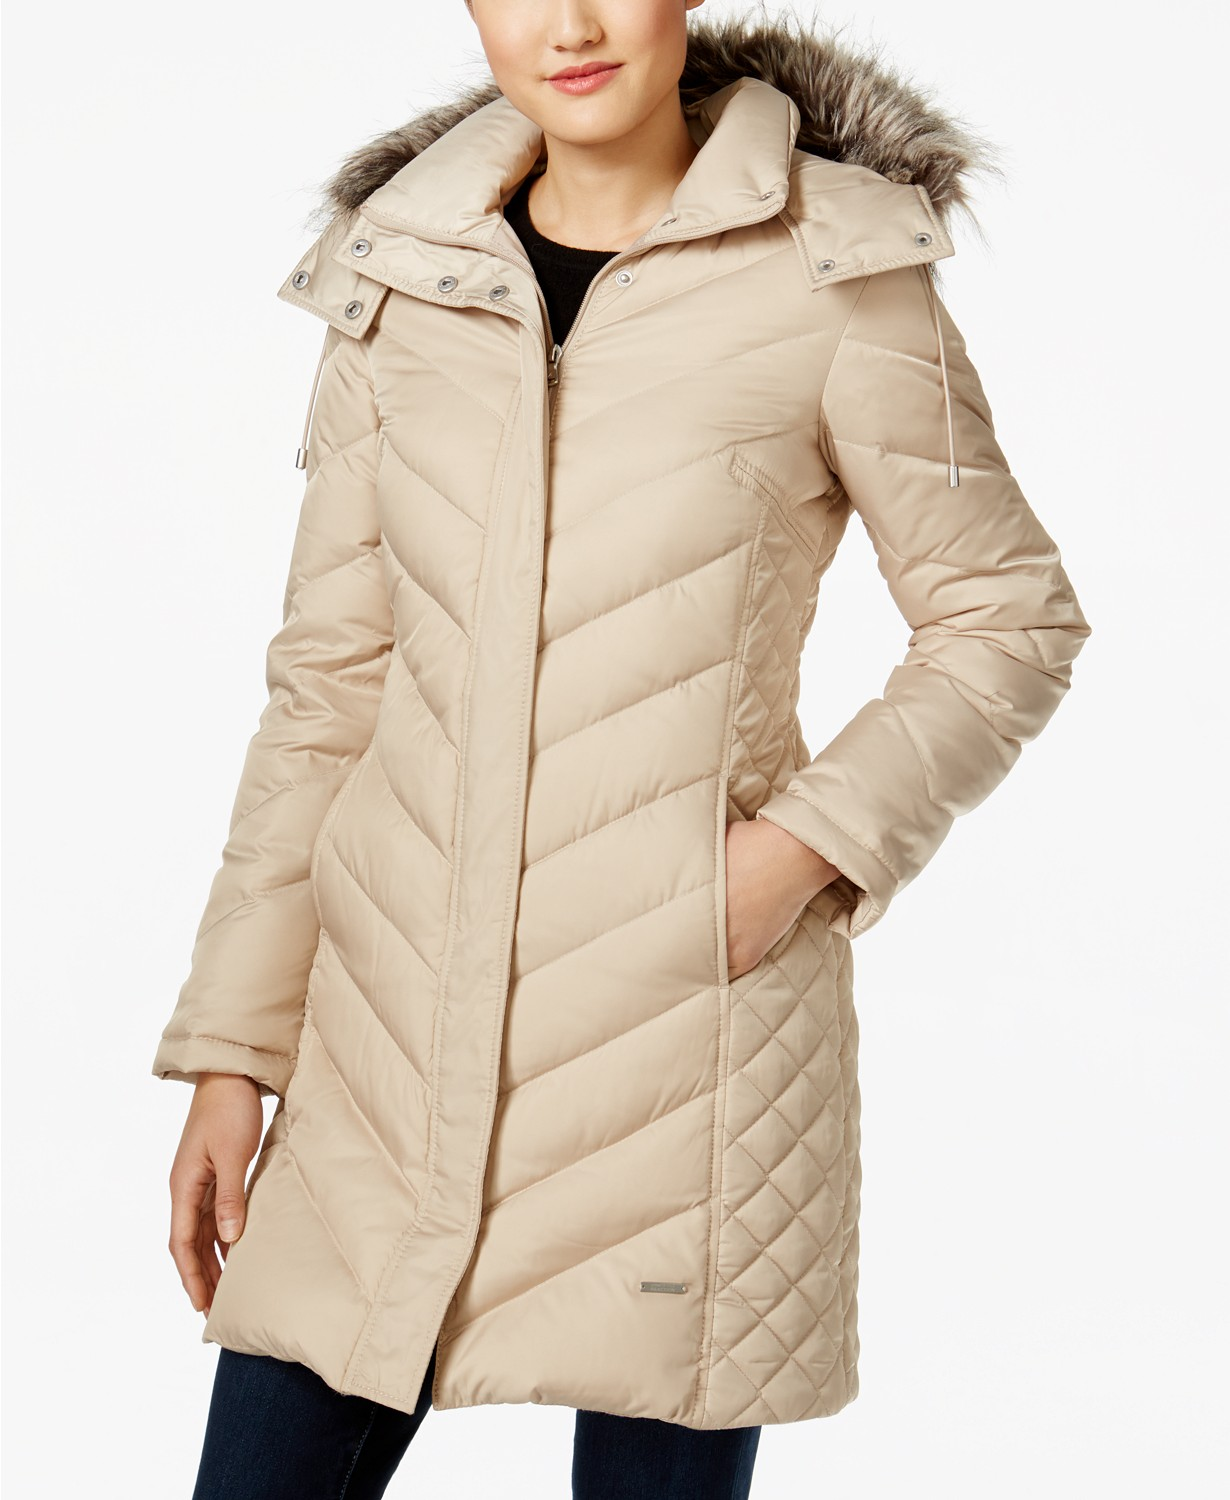 Save 60% on Kenneth Cole Hooded Faux-Fur-Trim Down Chevron Puffer Coat